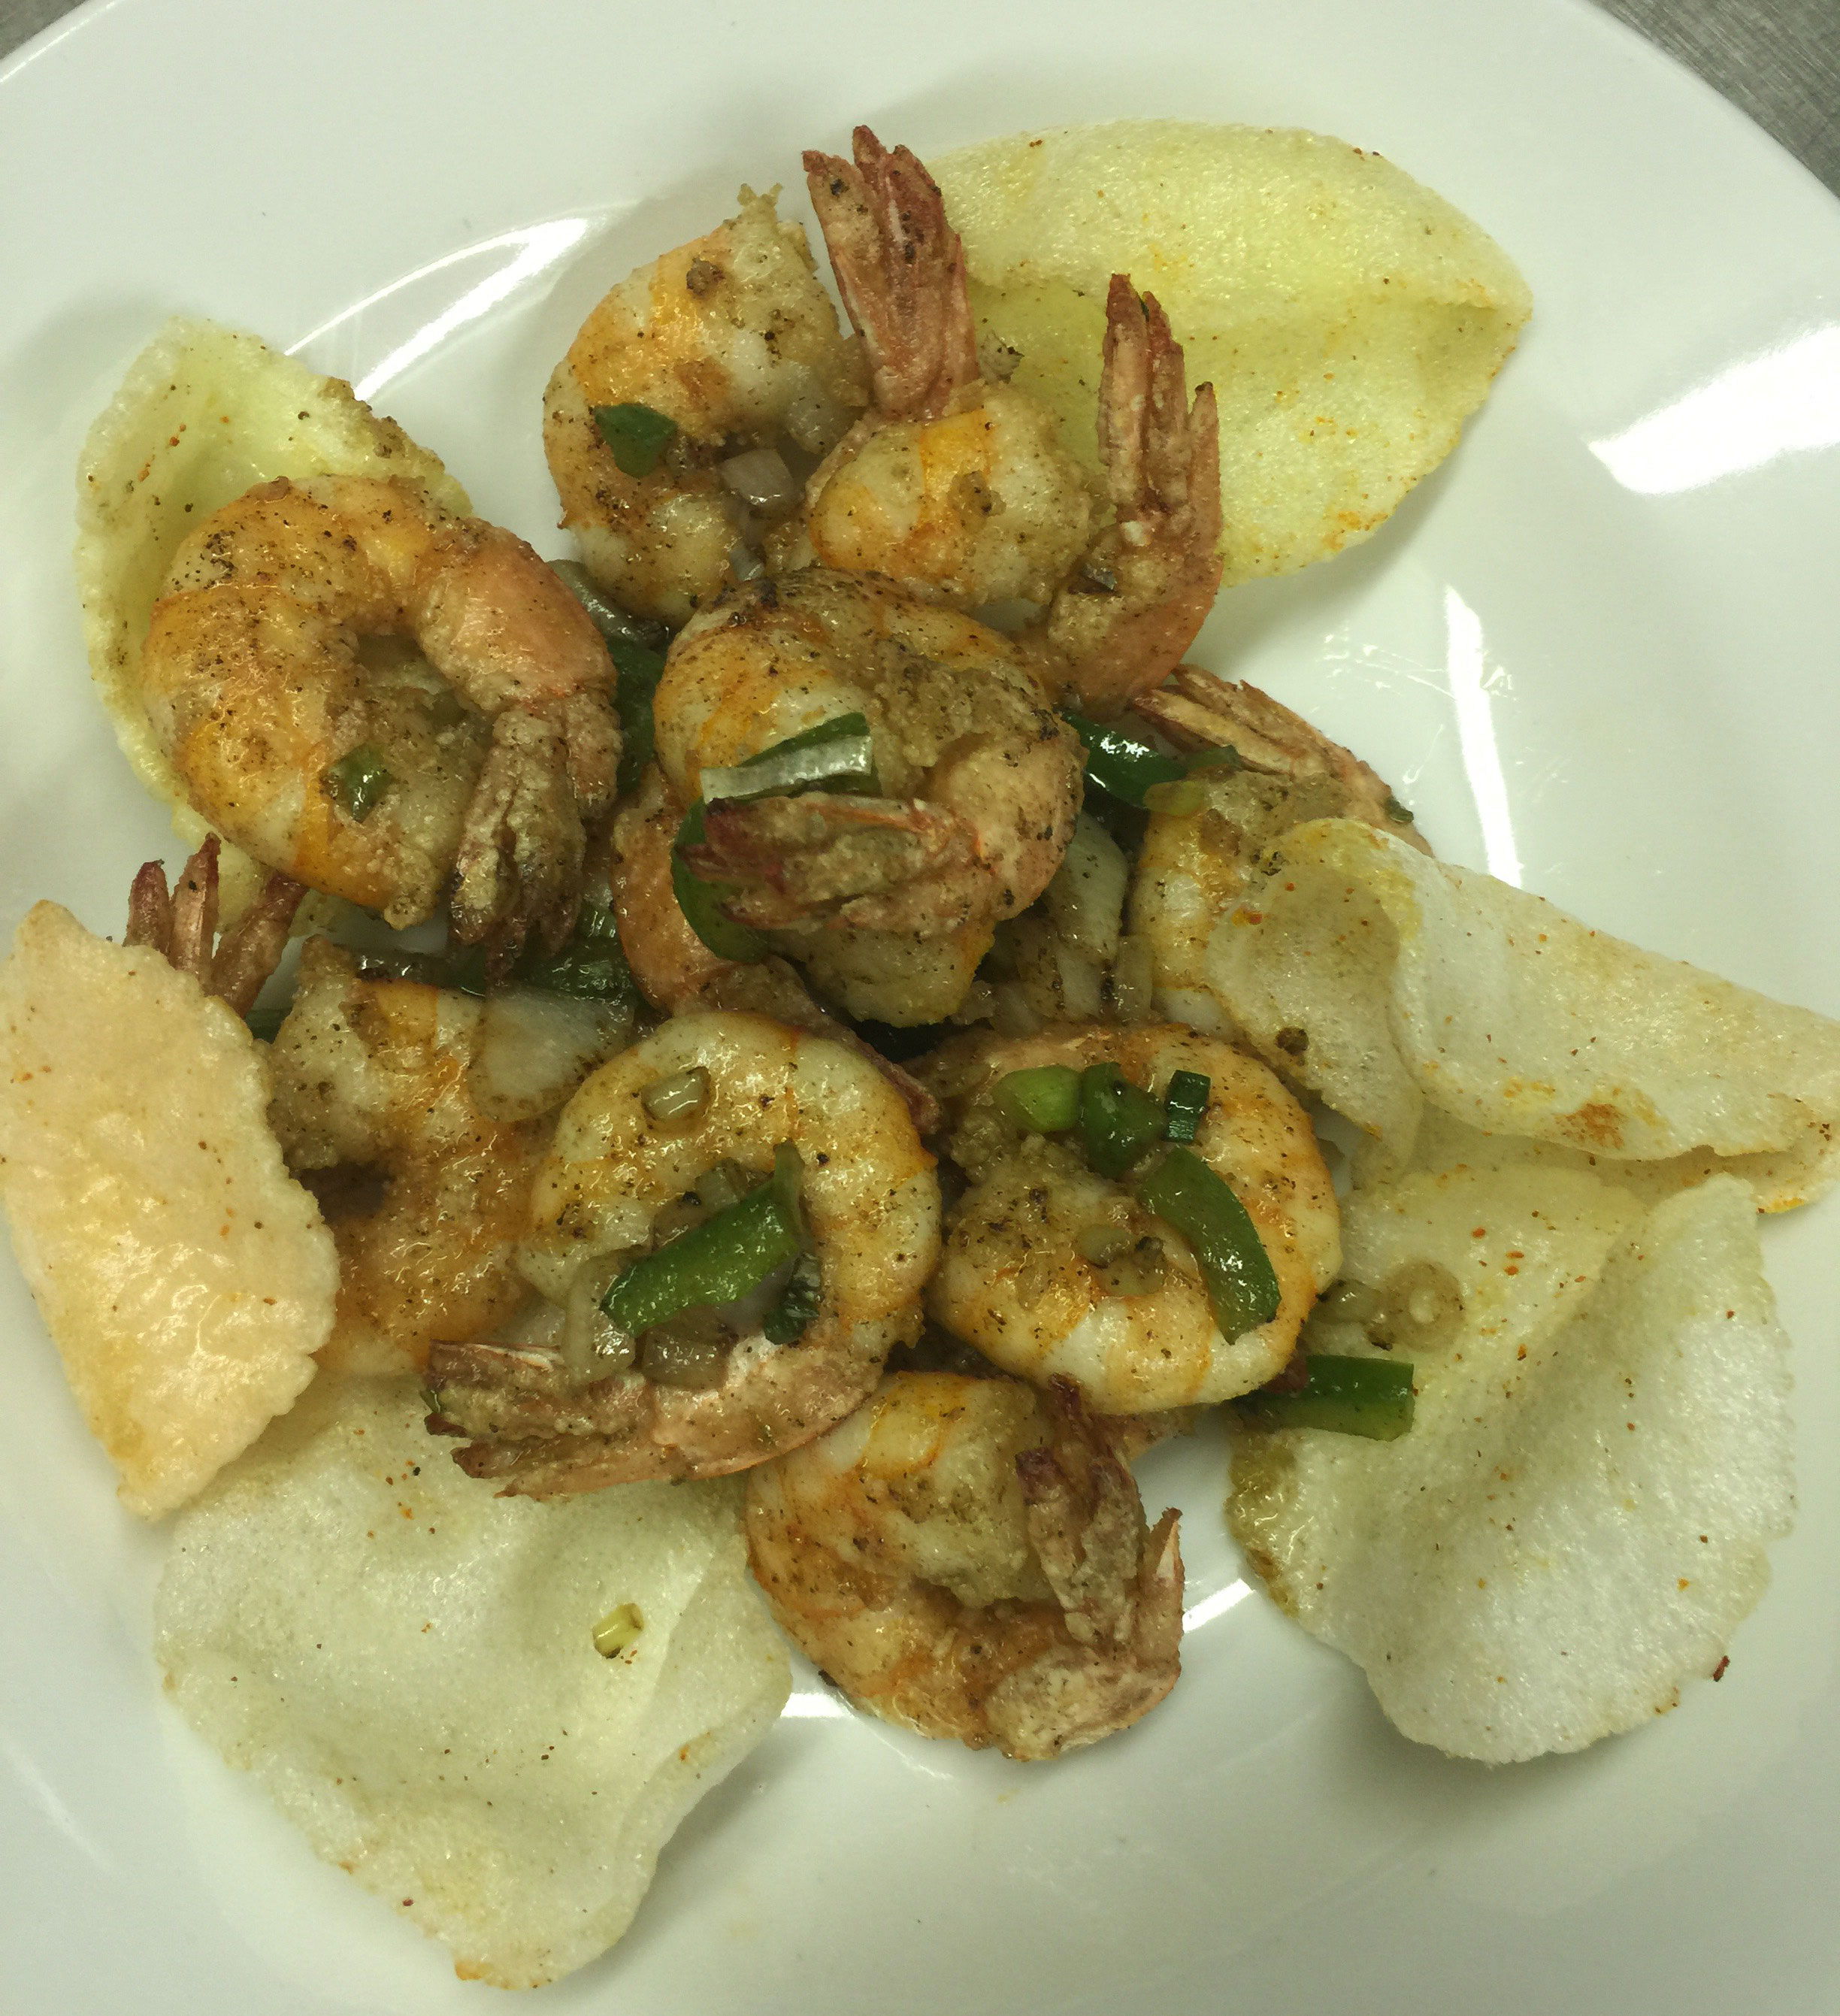 163. Salt & Pepper Shrimp